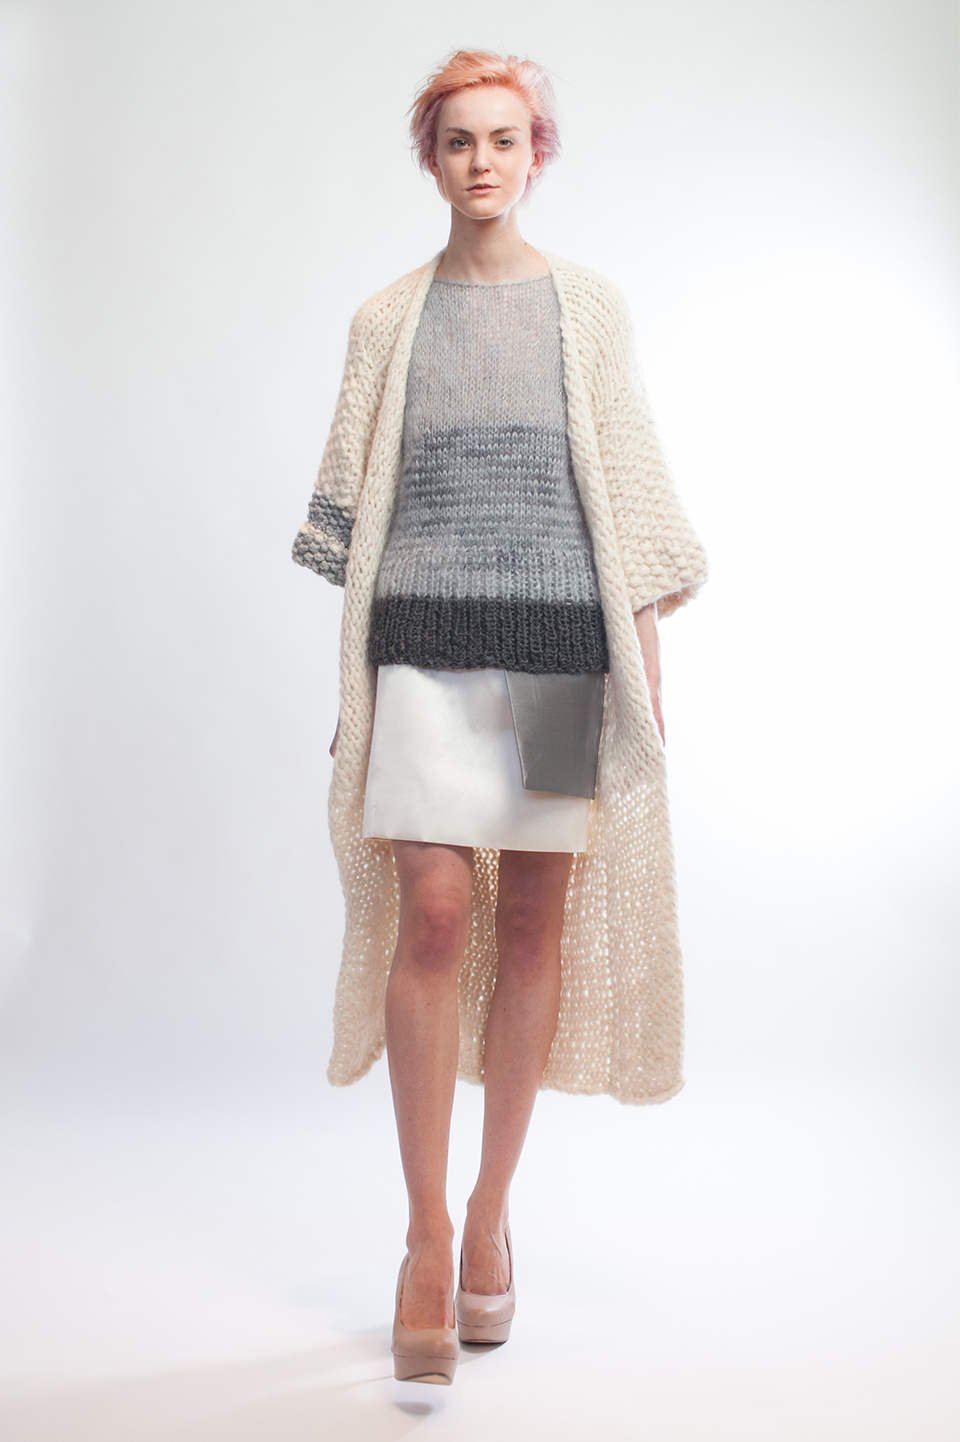 Claire Andrew Designer Fashion AW14 3 - Striped knit vest with longline chunky knit kimono cardigan